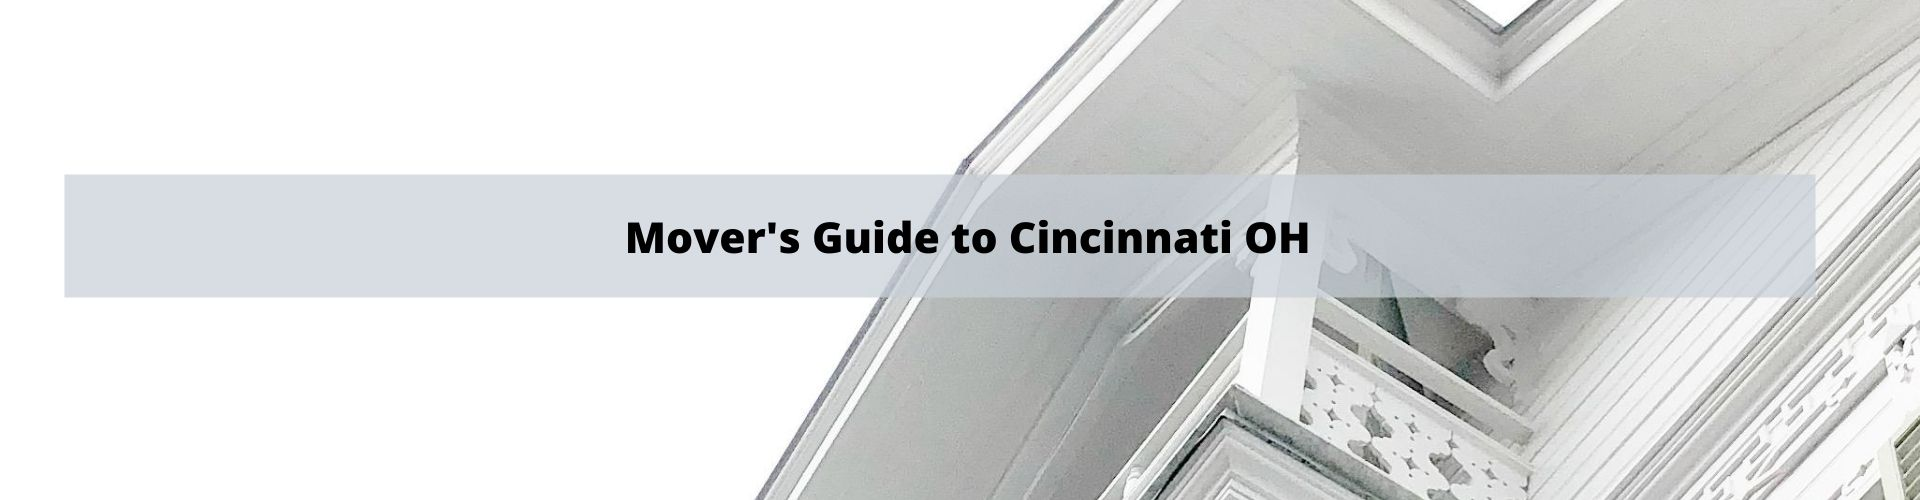 Mover's Guide to Cincinnati OH